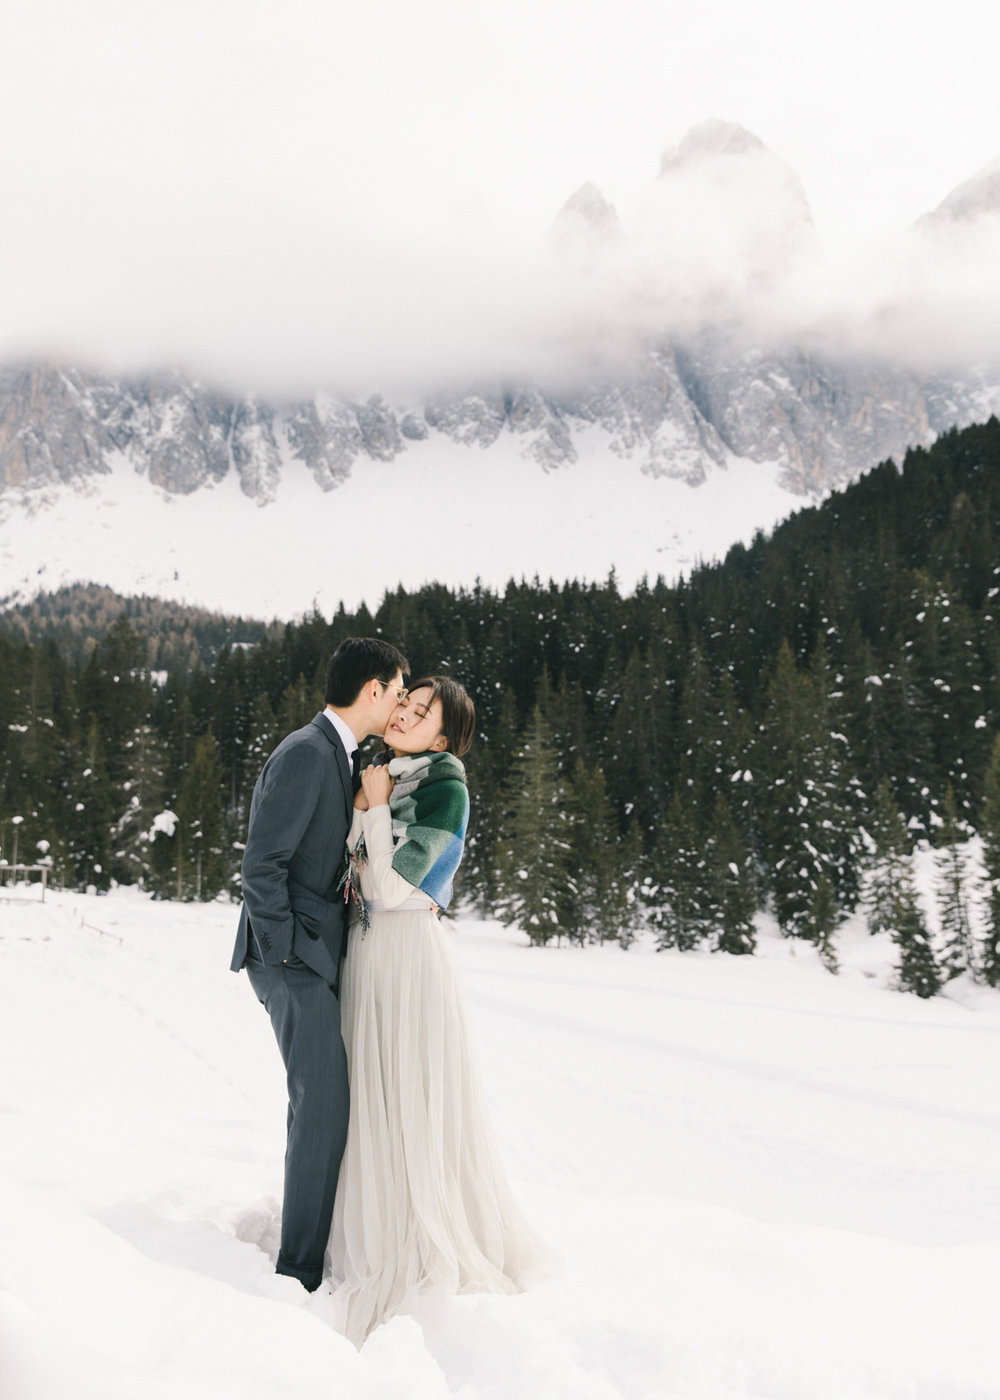 Destination Engagement Photoshoot in Dolomites Italy by CHYMO &